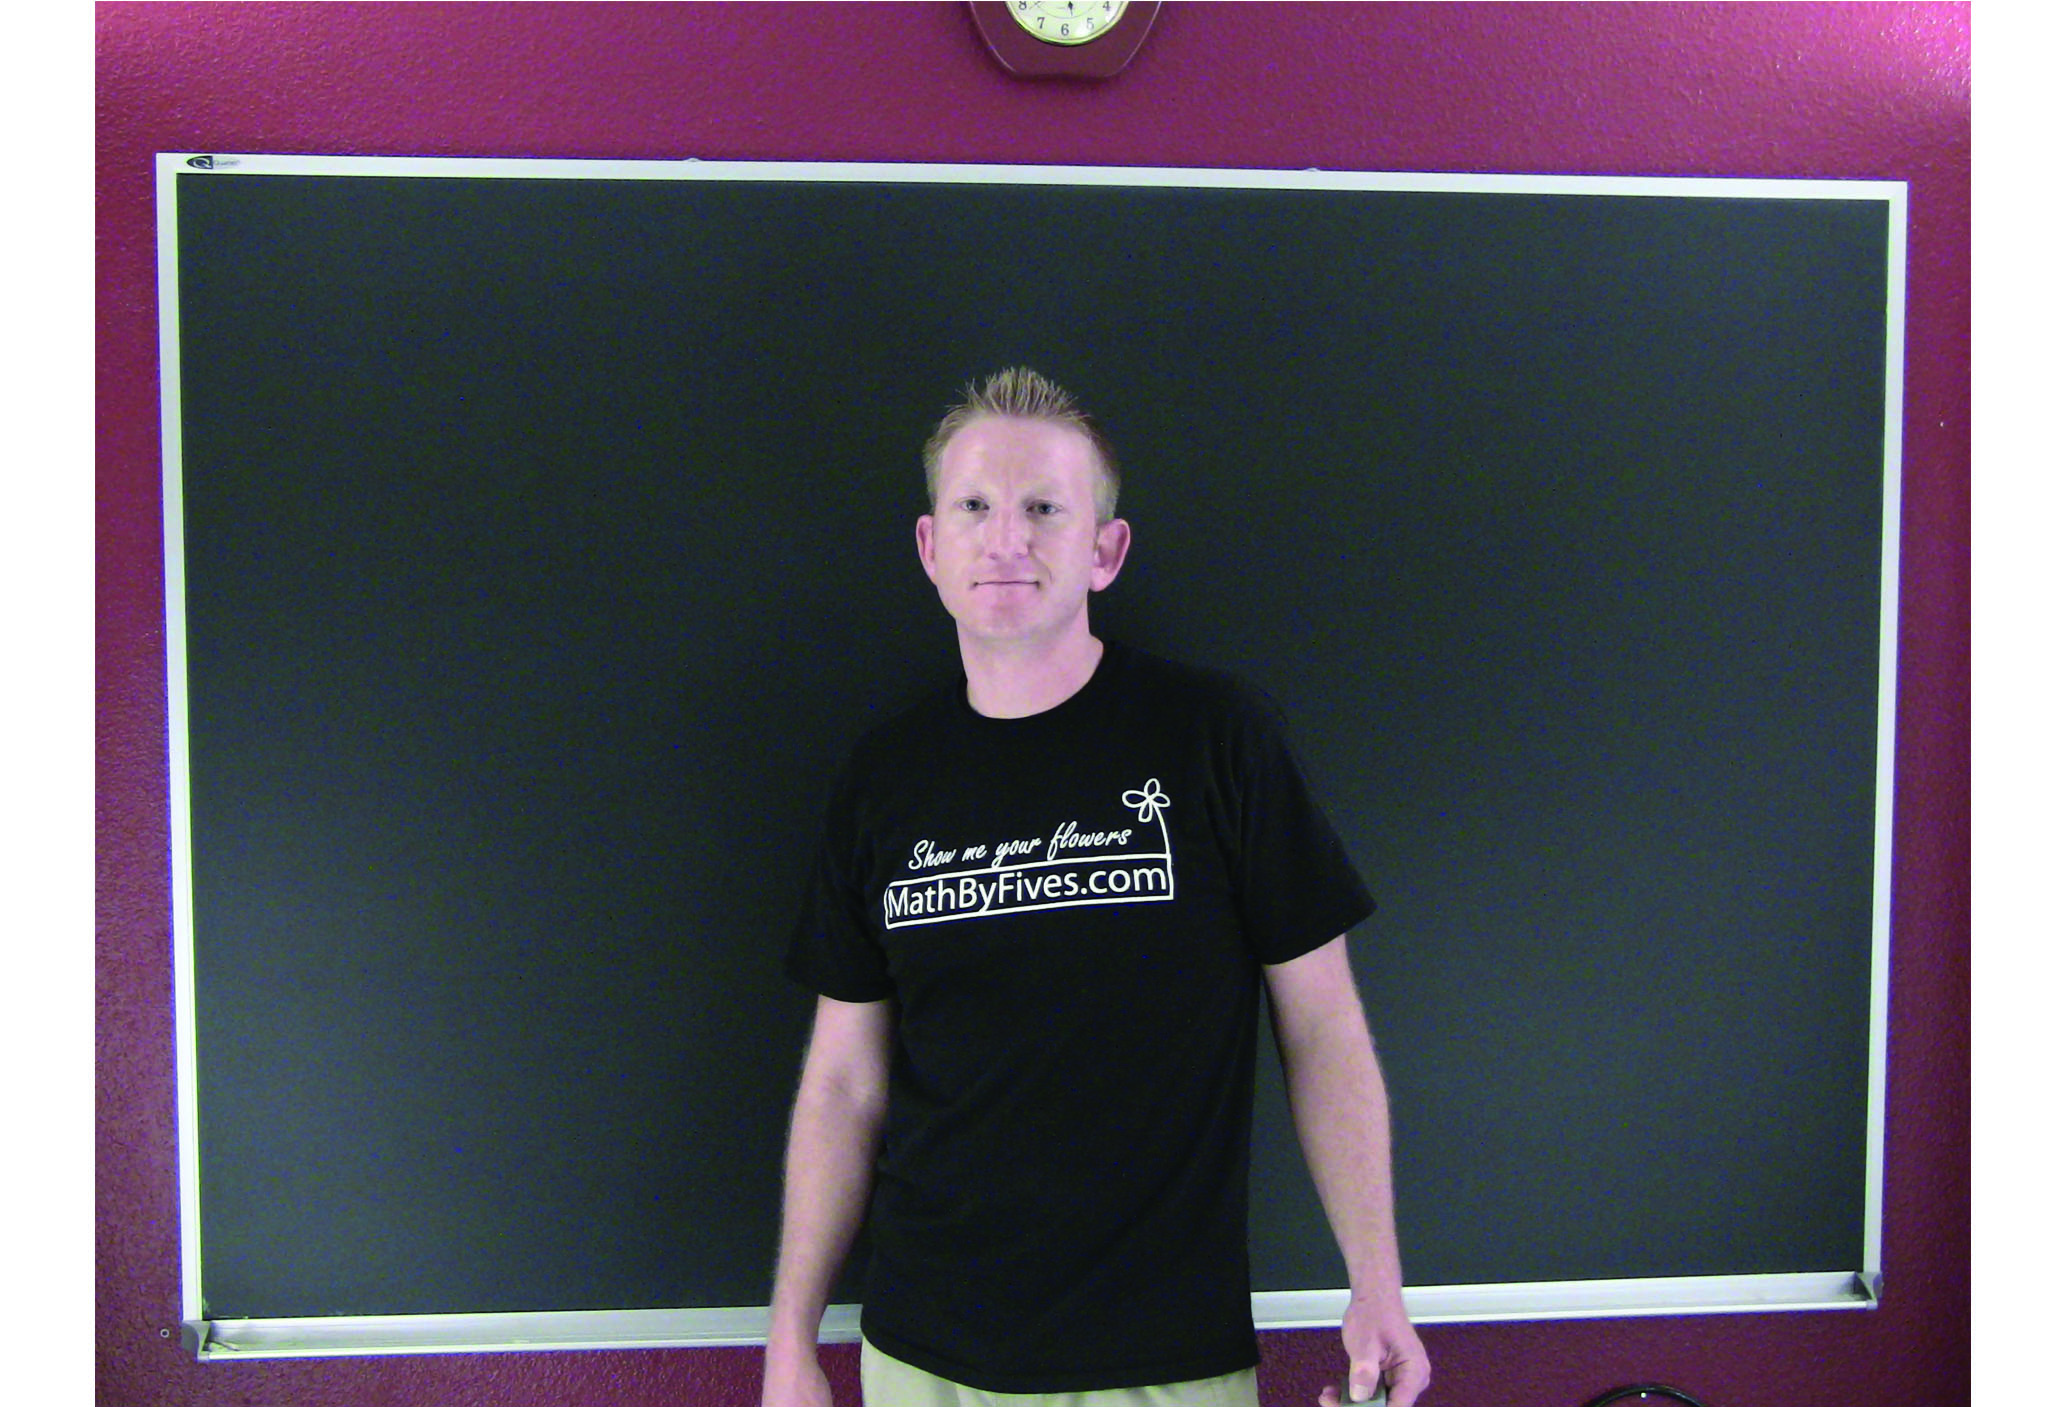 Former RCC math instructor utilizes YouTube in class   Viewpoints Online